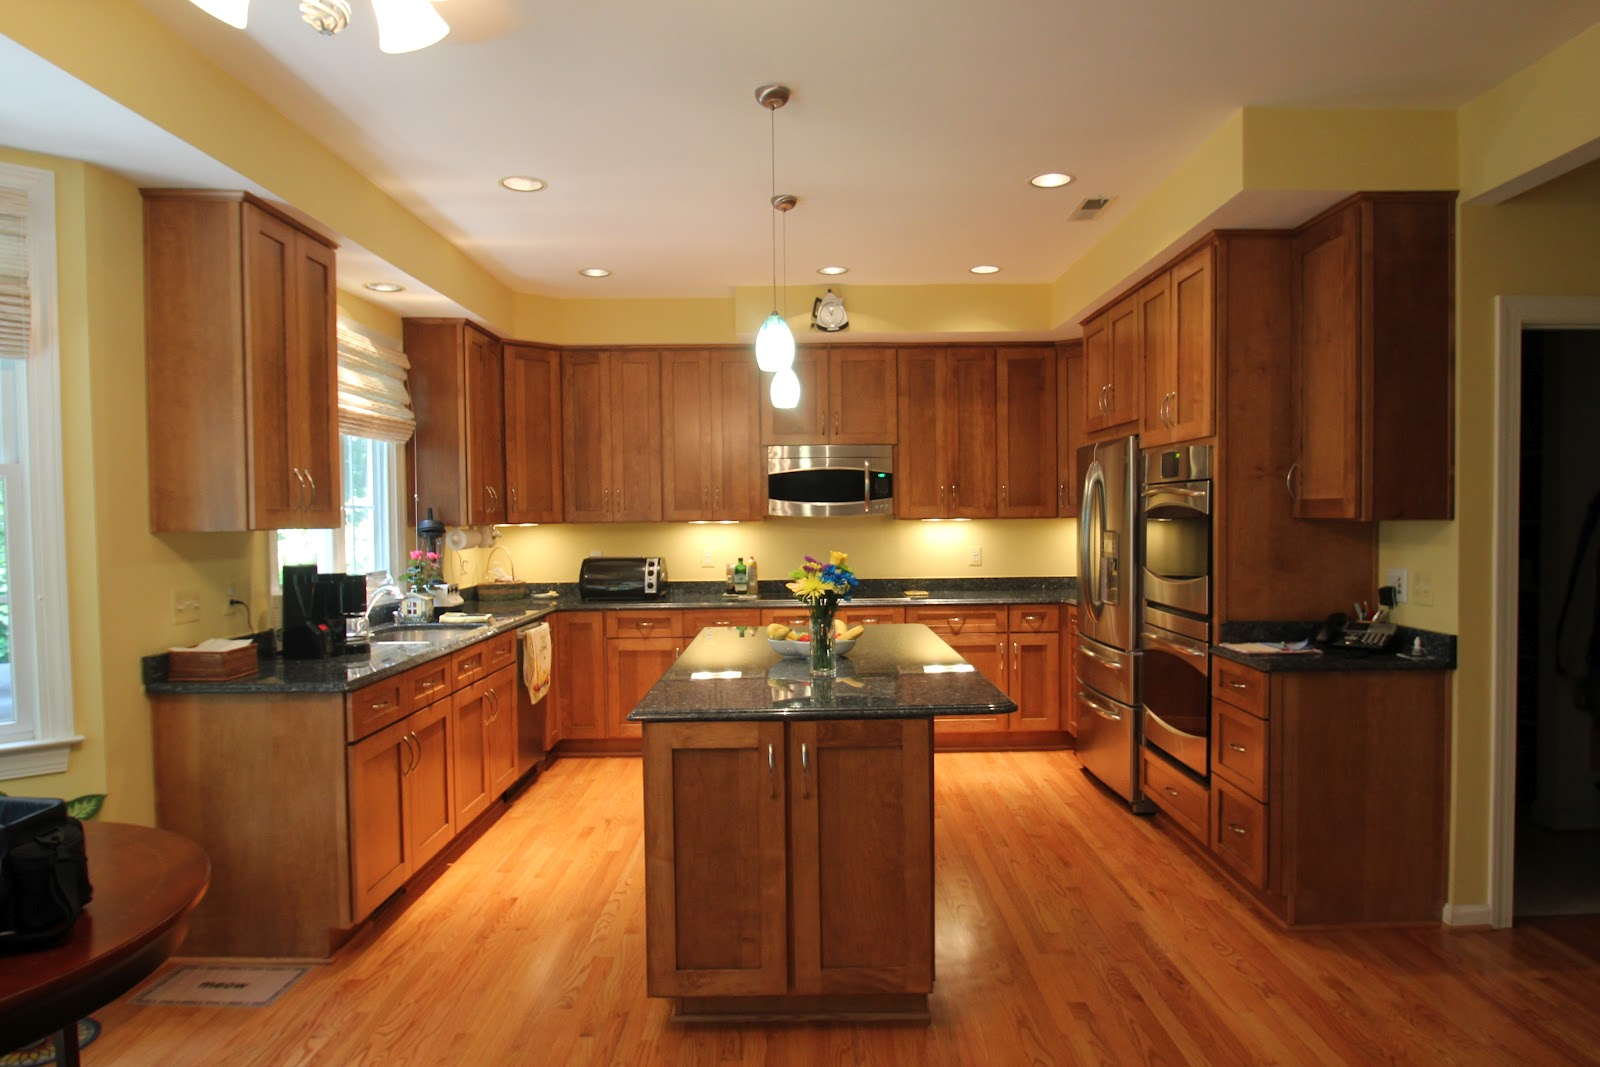 Gorgeous Kitchen Renovation In Potomac Maryland: Signature Kitchens & WoodCrafters: Kitchen Remodeling